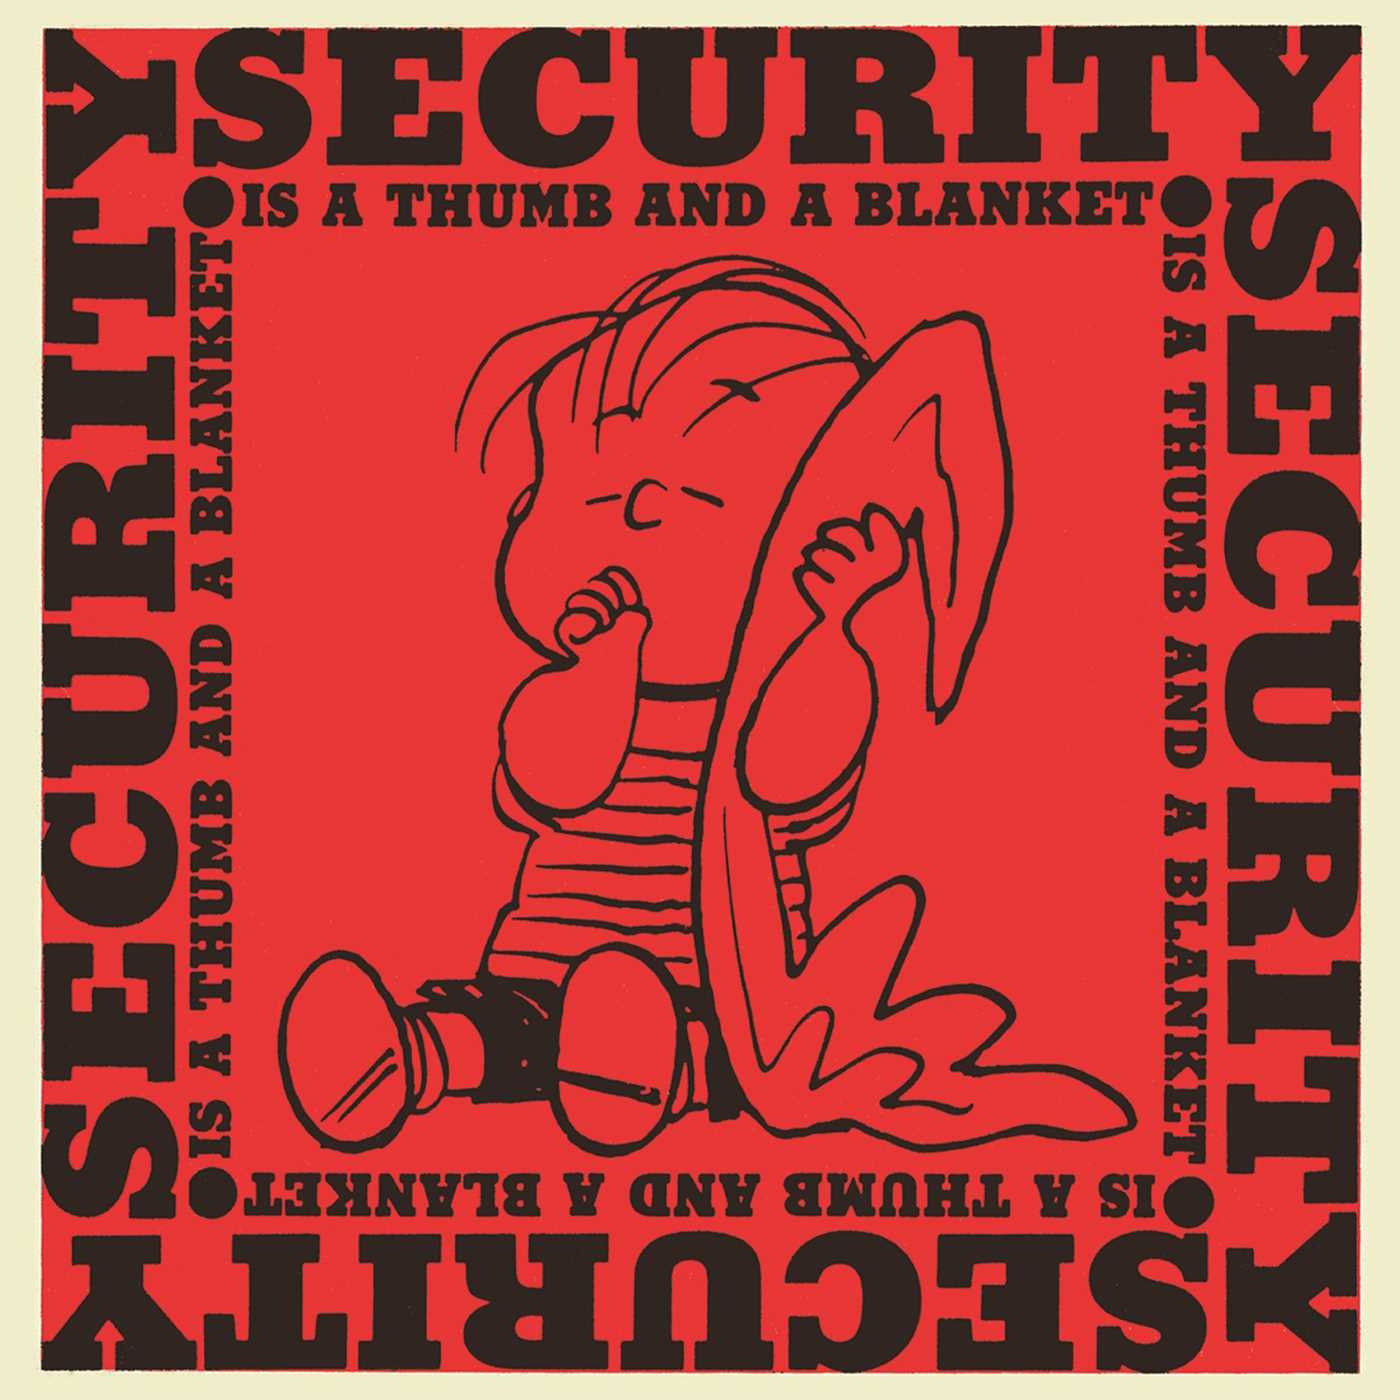 『security is a thumb and a blanket』